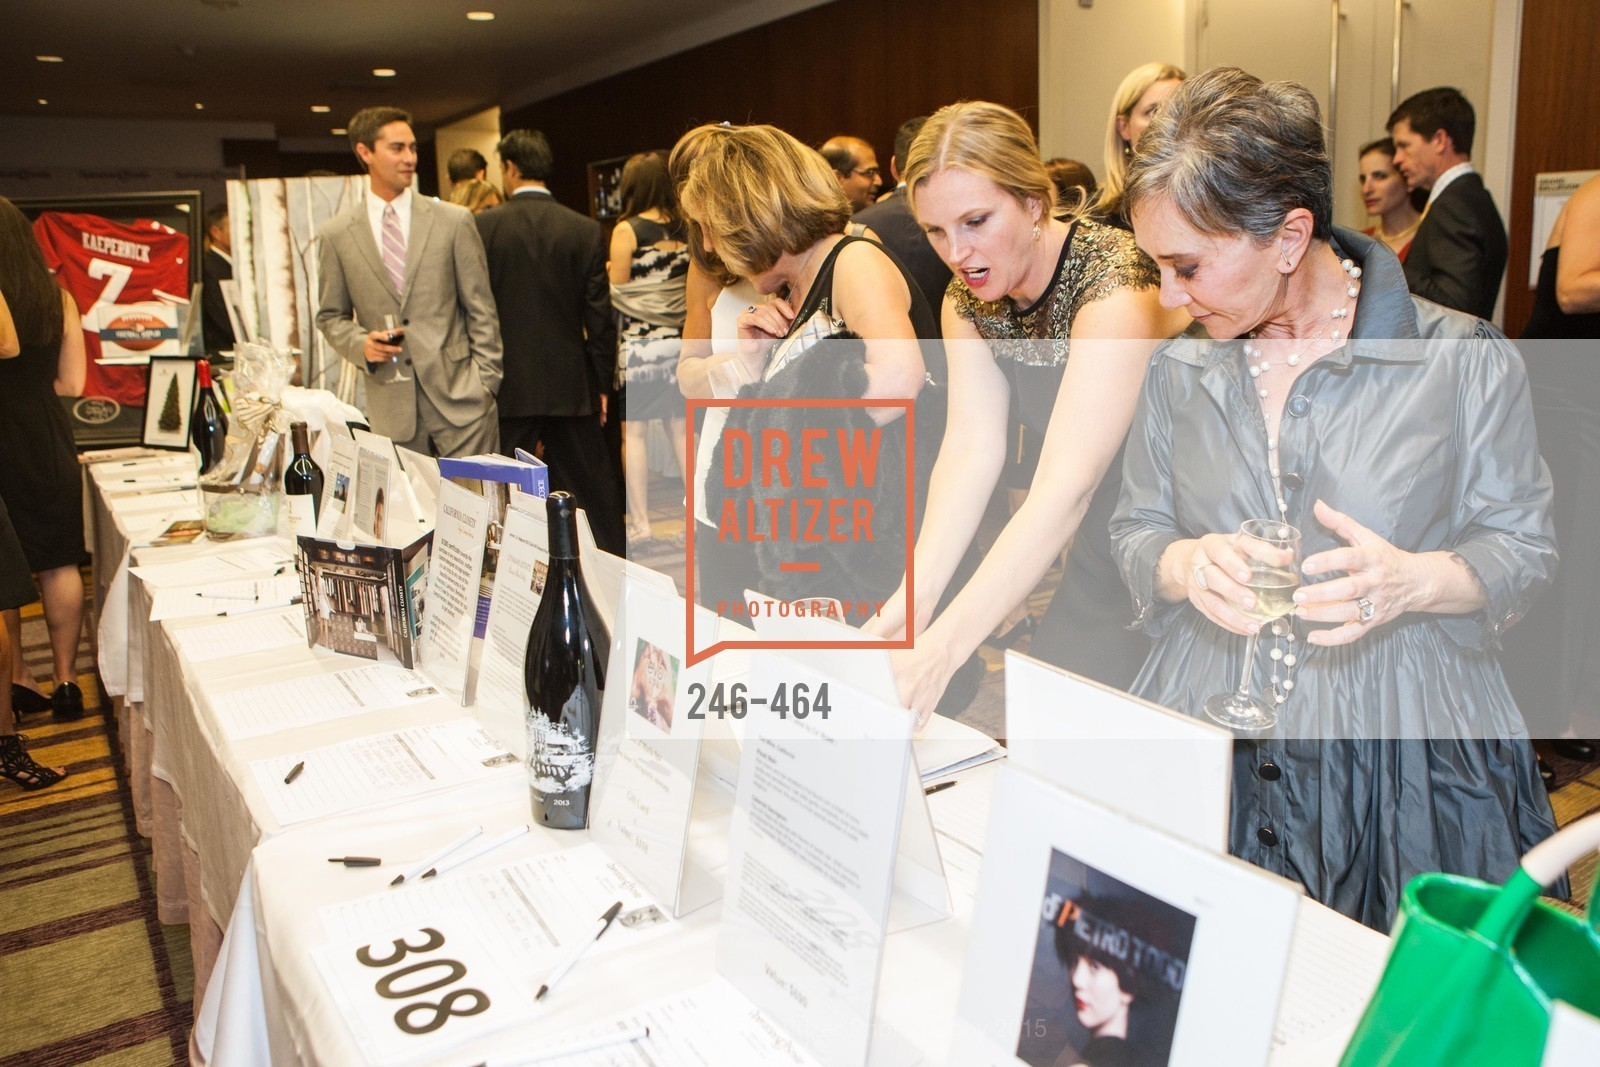 Atmosphere, Operation Smile Presents THE SAN FRANCISCO 2015 SMILE GALA, InterContinental Hotel, November 7th, 2015,Drew Altizer, Drew Altizer Photography, full-service event agency, private events, San Francisco photographer, photographer California